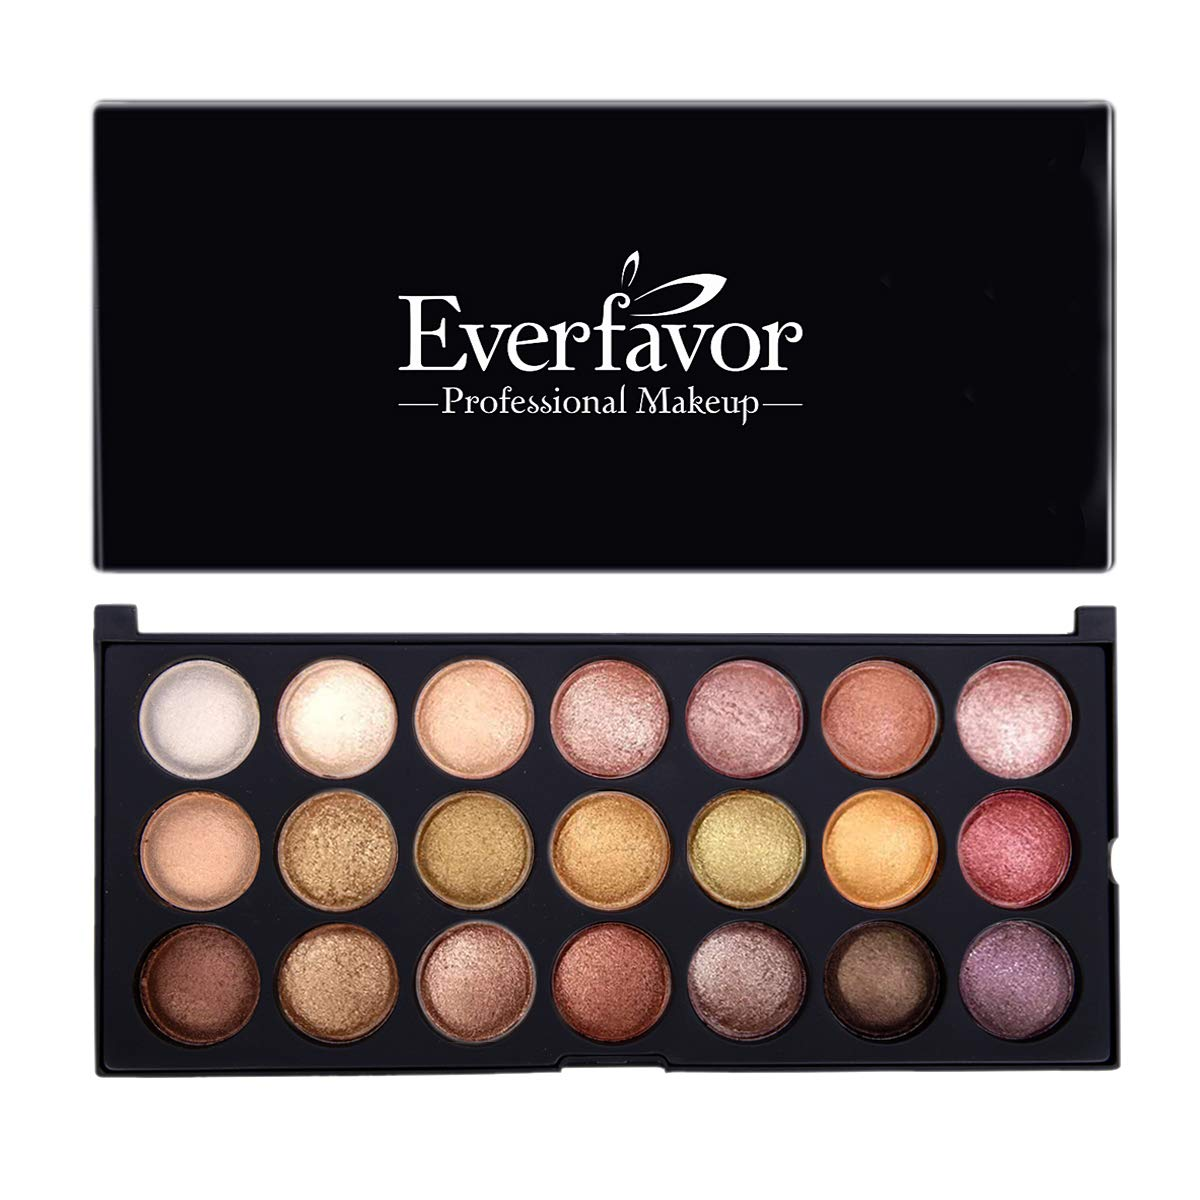 Eyeshadow Palette Makeup, Everfavor Pigmented Eye Shadow Nude Palettes - Professional 21 Colors Shimmer Warm Neutral Smoky Cosmetic Baked Eye Shadows (21 Colors, 09) by Everfavor